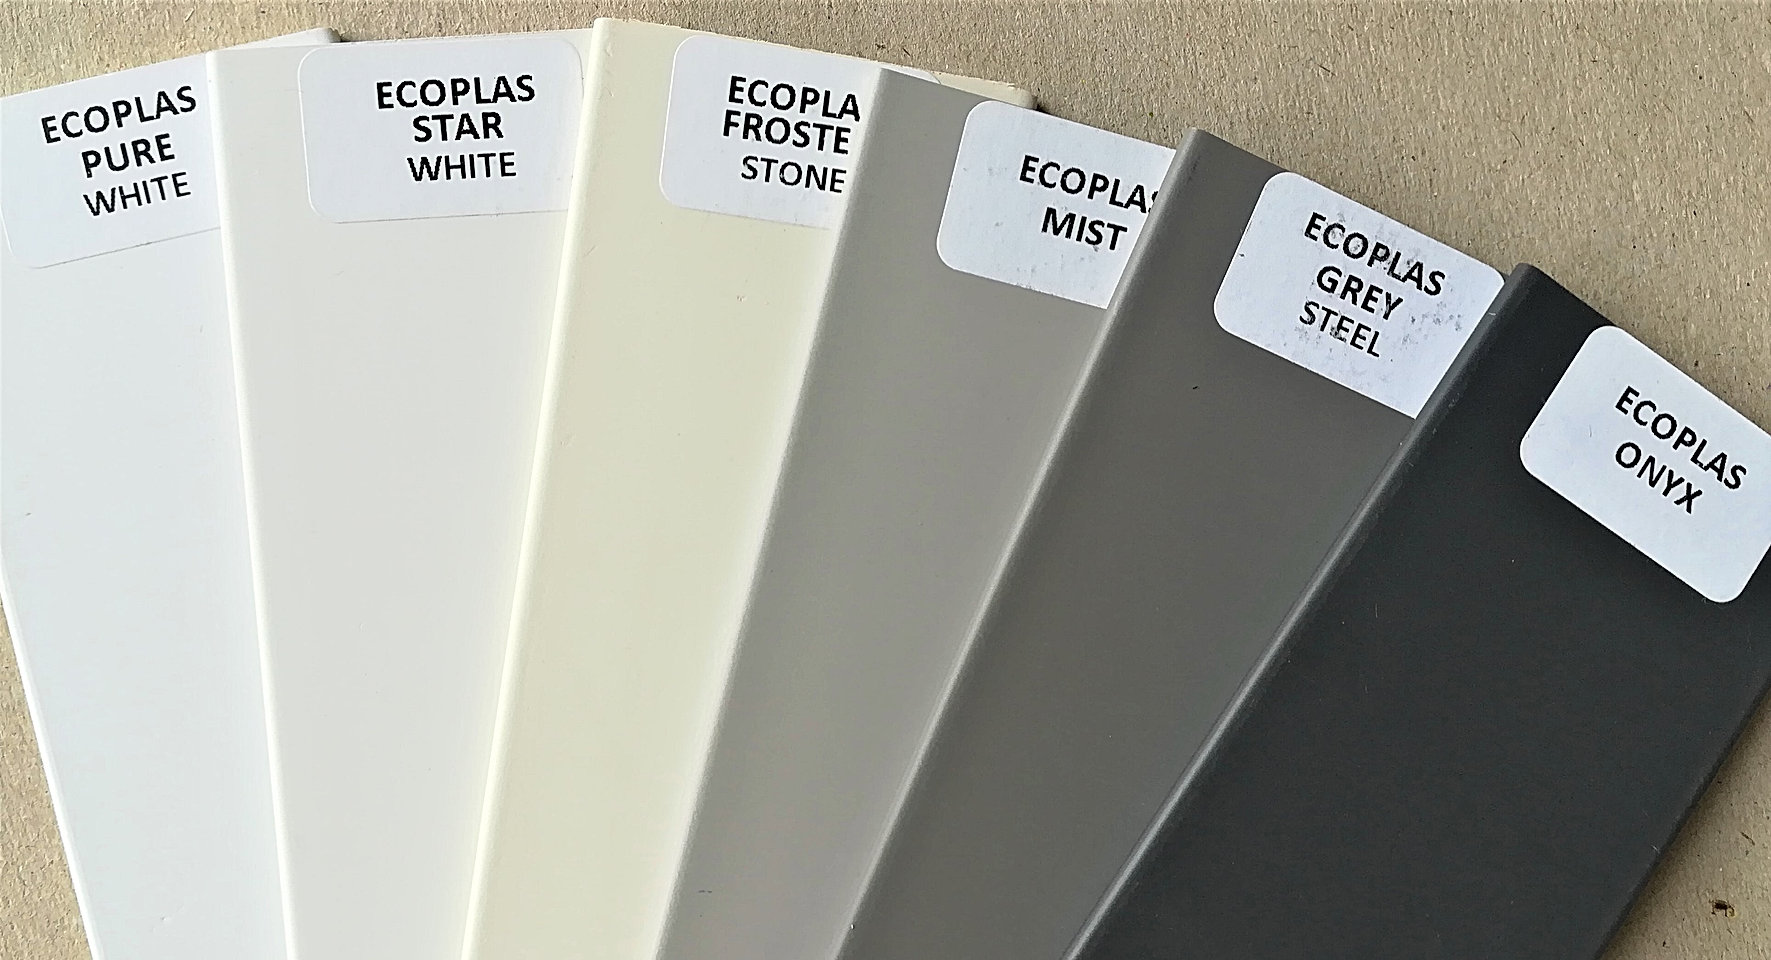 Sasmples for Ecoplas Venetian Blinds. - Blind Specialist